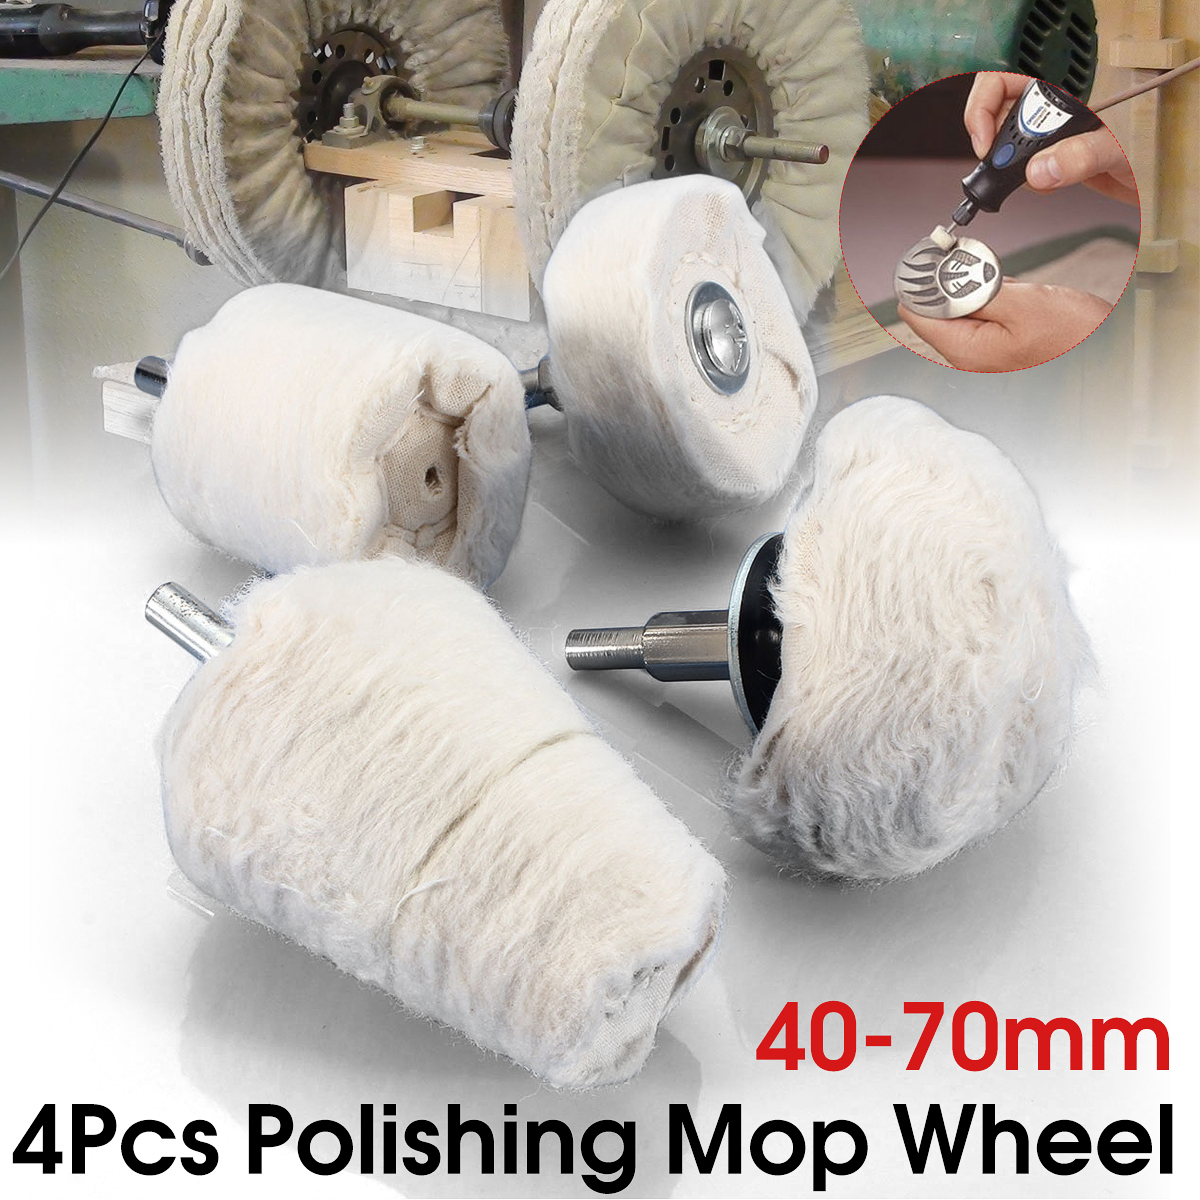 "4-Pack 1/4"" Shank Polishing Mop Wheel Sets Rotary Tool Polishing Mop Buffing Wheel Polish Pad Polisher Drills"